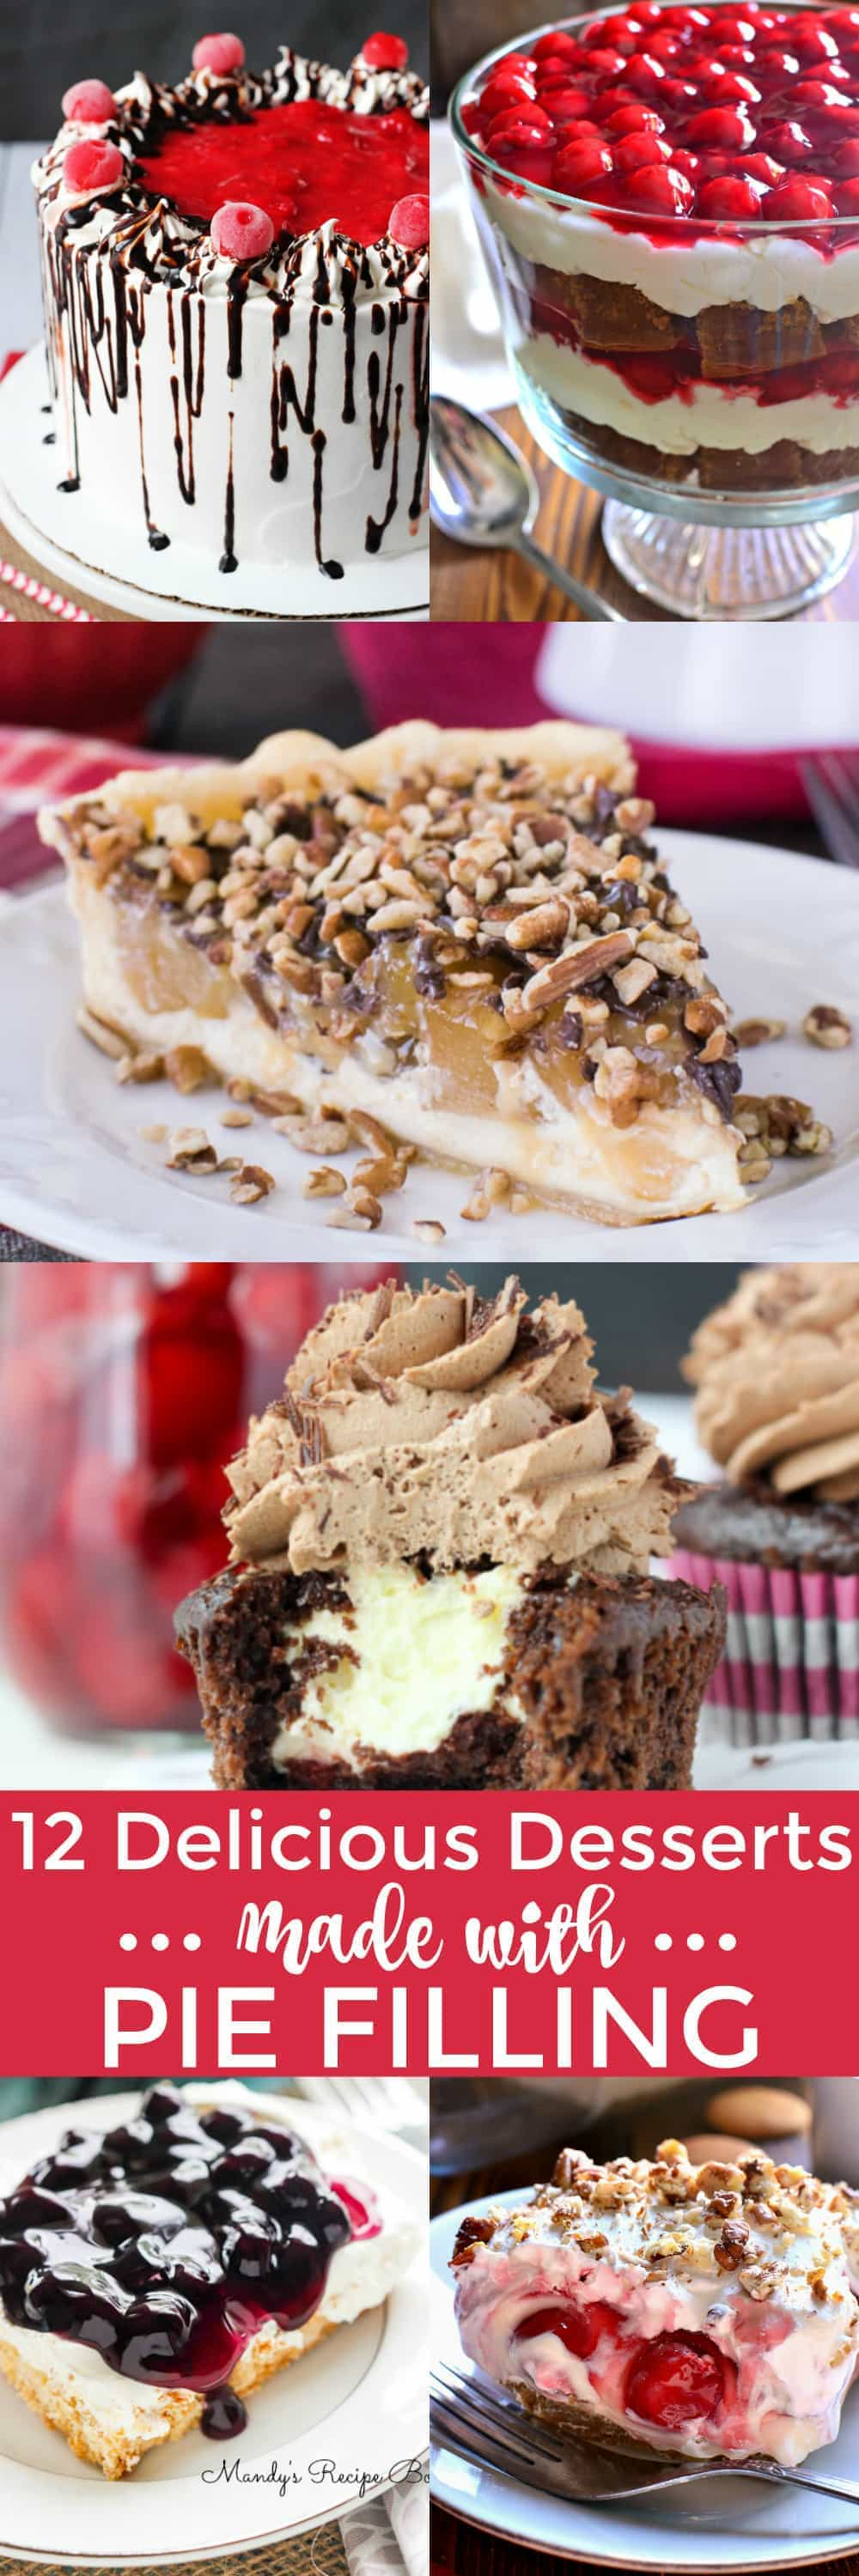 12 Delicious Desserts to help get you ready for the holidays! These treats are perfect for all your holiday gatherings, and they're all made with pie filling! Which means they not only taste great, but they're easy to whip up during the busiest time of year.